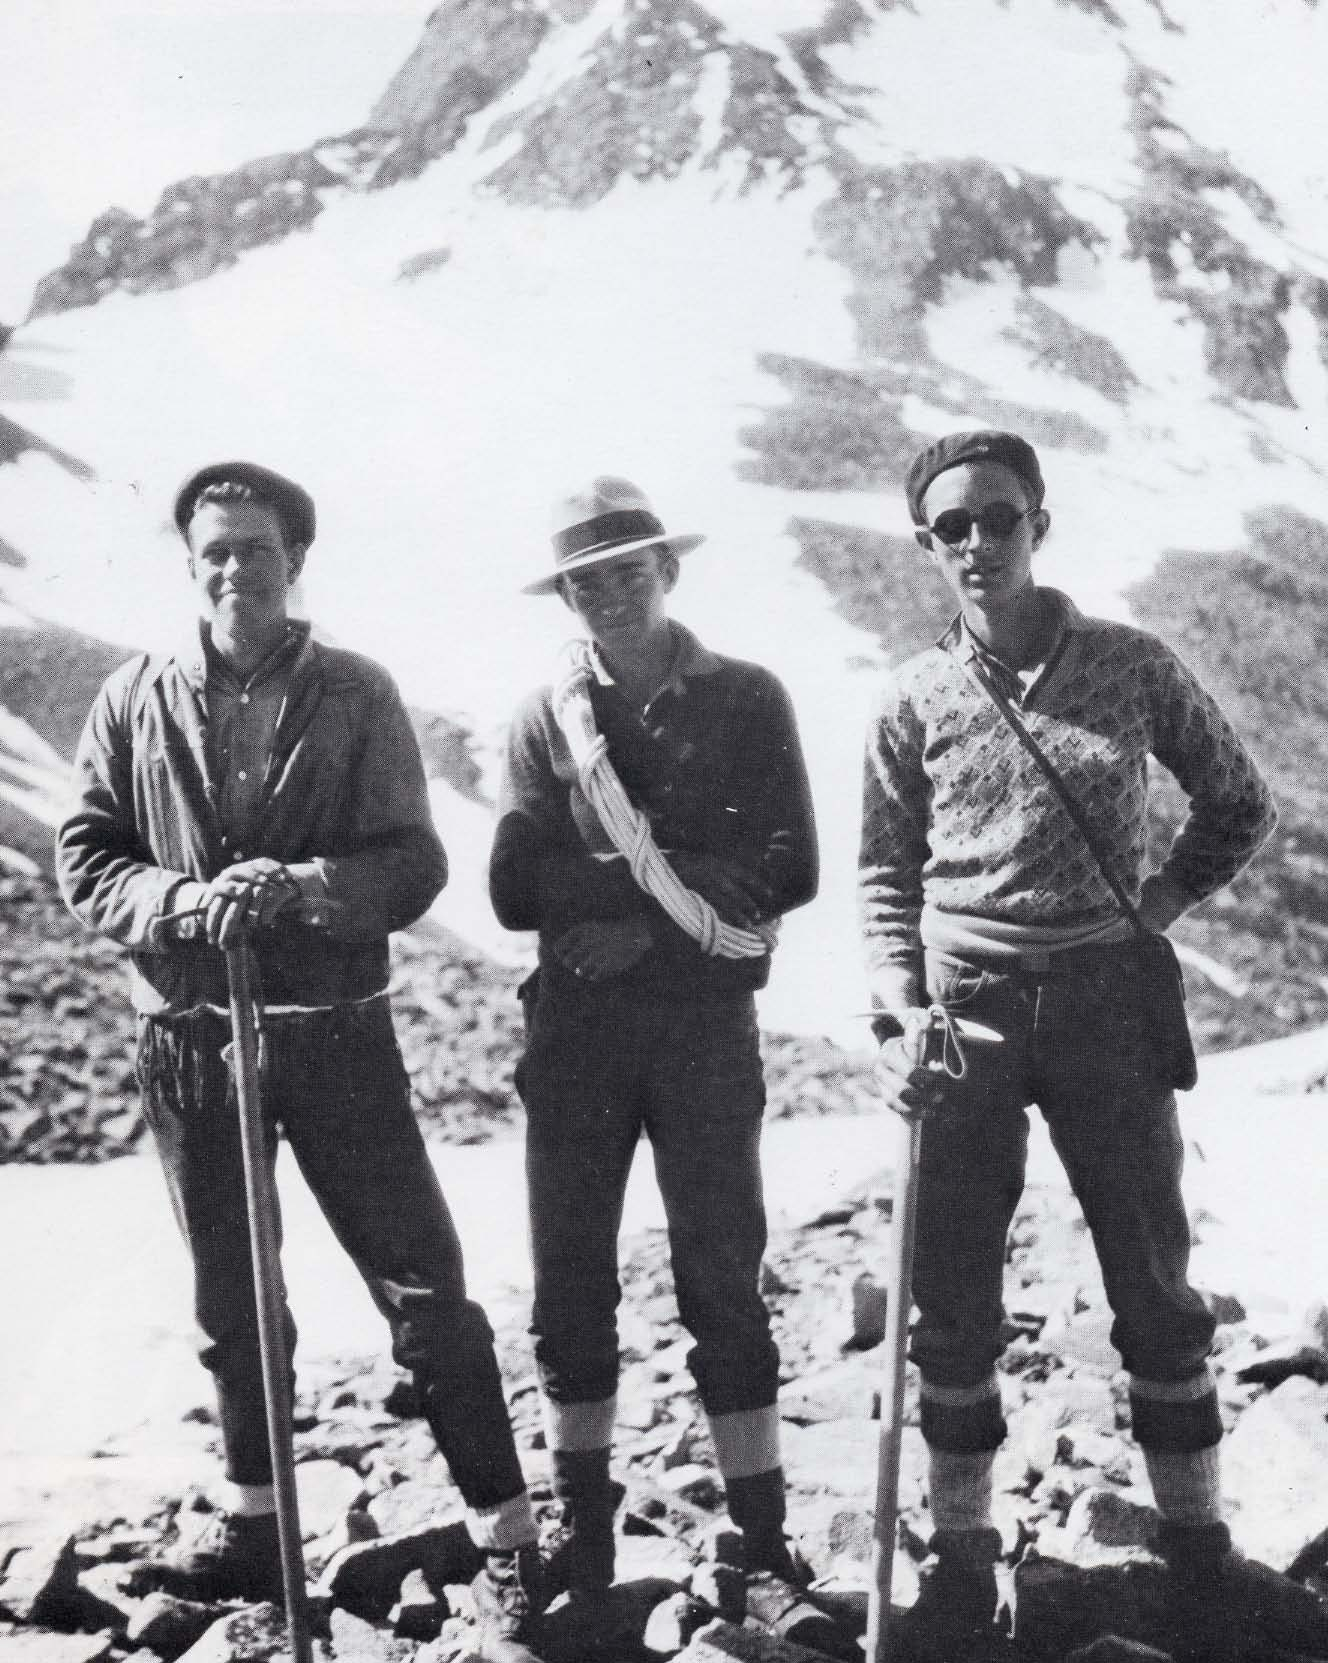 Dwight Lavender on the left with his friends Chester Price and Forrest Greenfield in 1930 after a successful ascent of El Diente (14,159 feet). Dwight and Chester organized the San Juan Mountaineers.